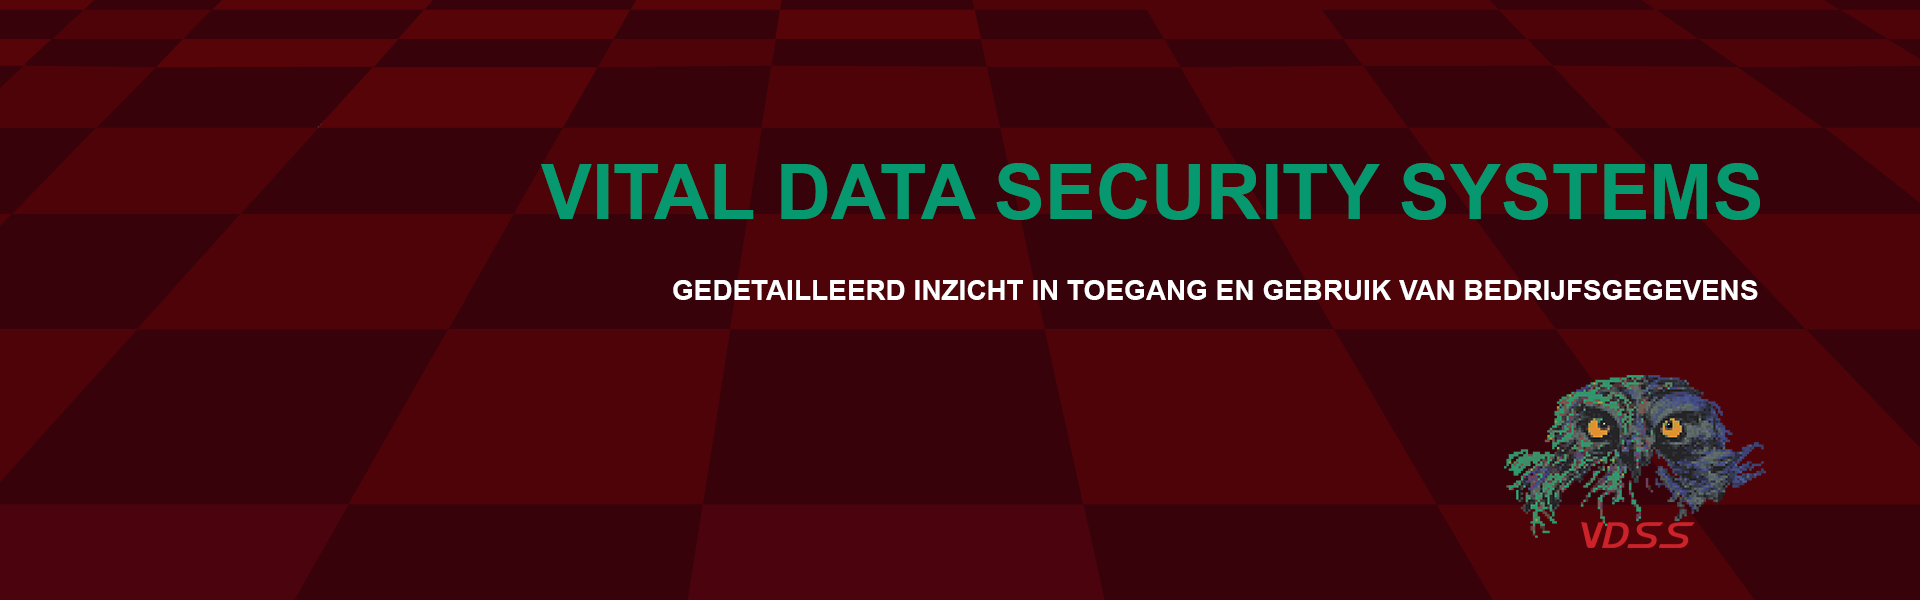 banner VITAL DATA SECURITY SYSTEMS